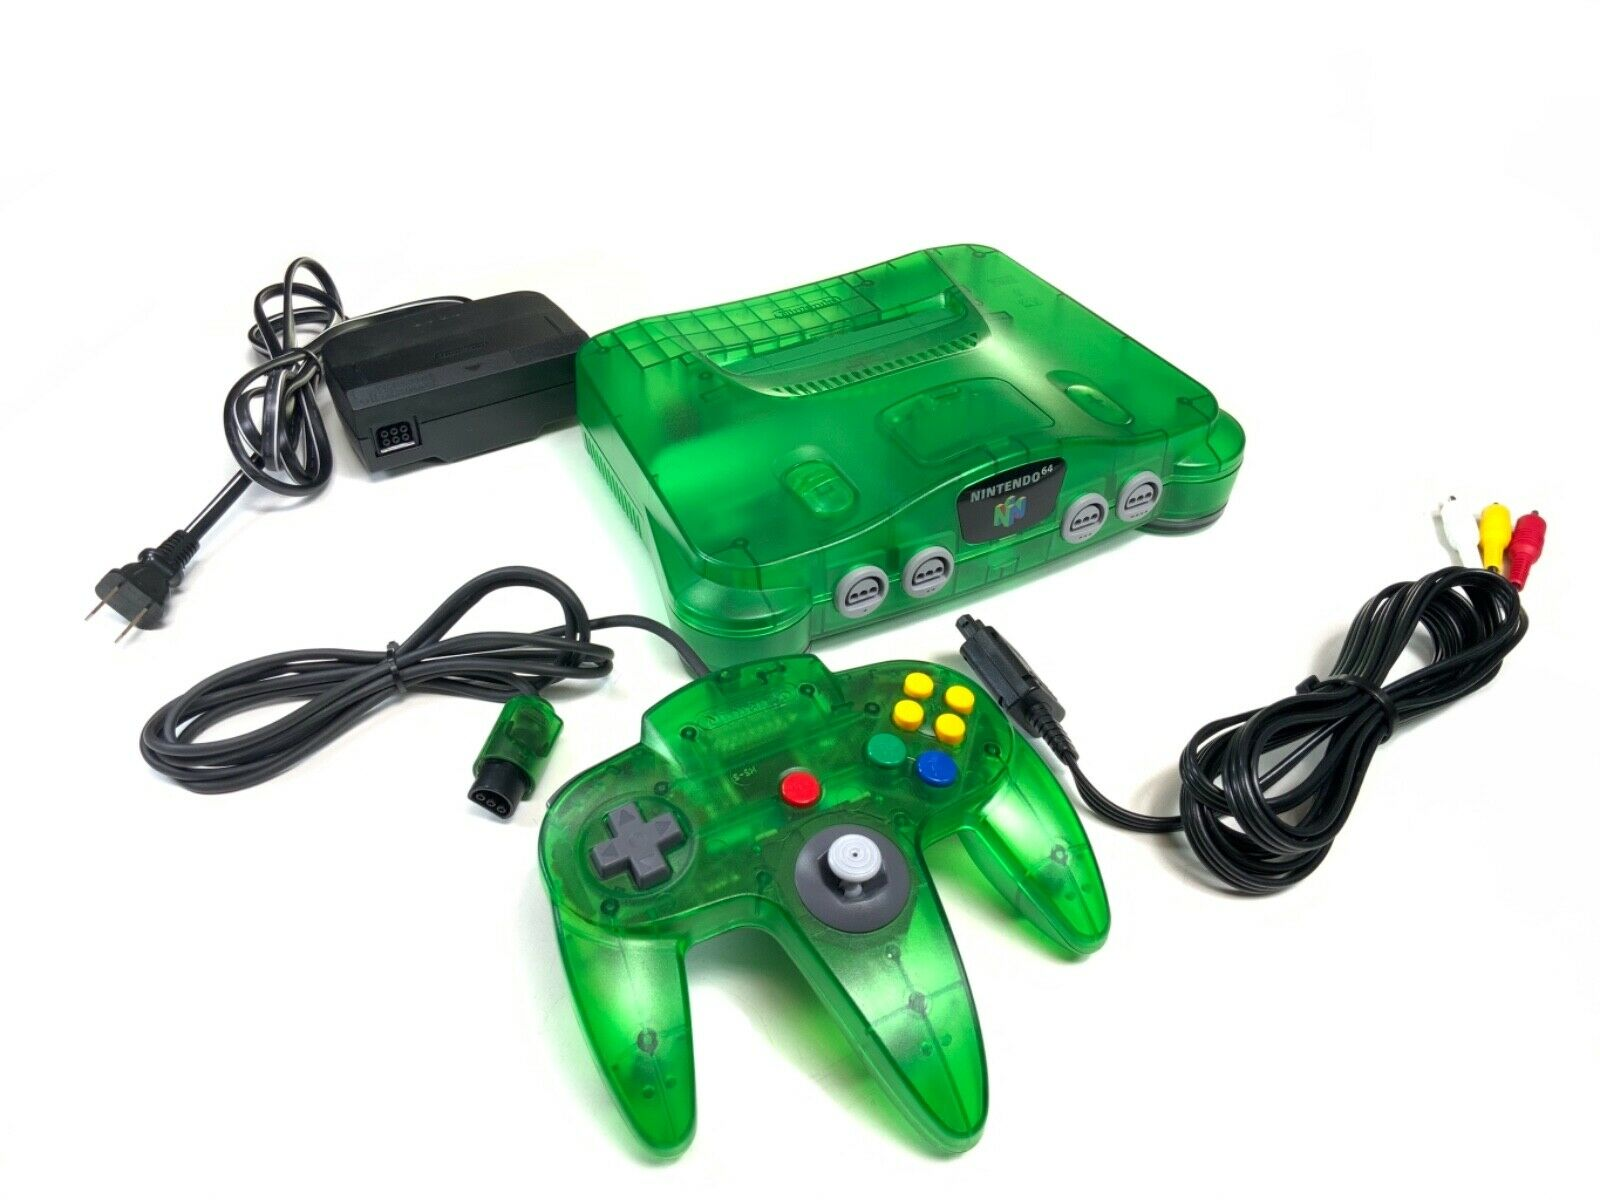 ORIGINAL NINTENDO 64 JUNGLE GREEN SYSTEM CONSOLE W/ POWER, CONTROLLER RCA - $203.99